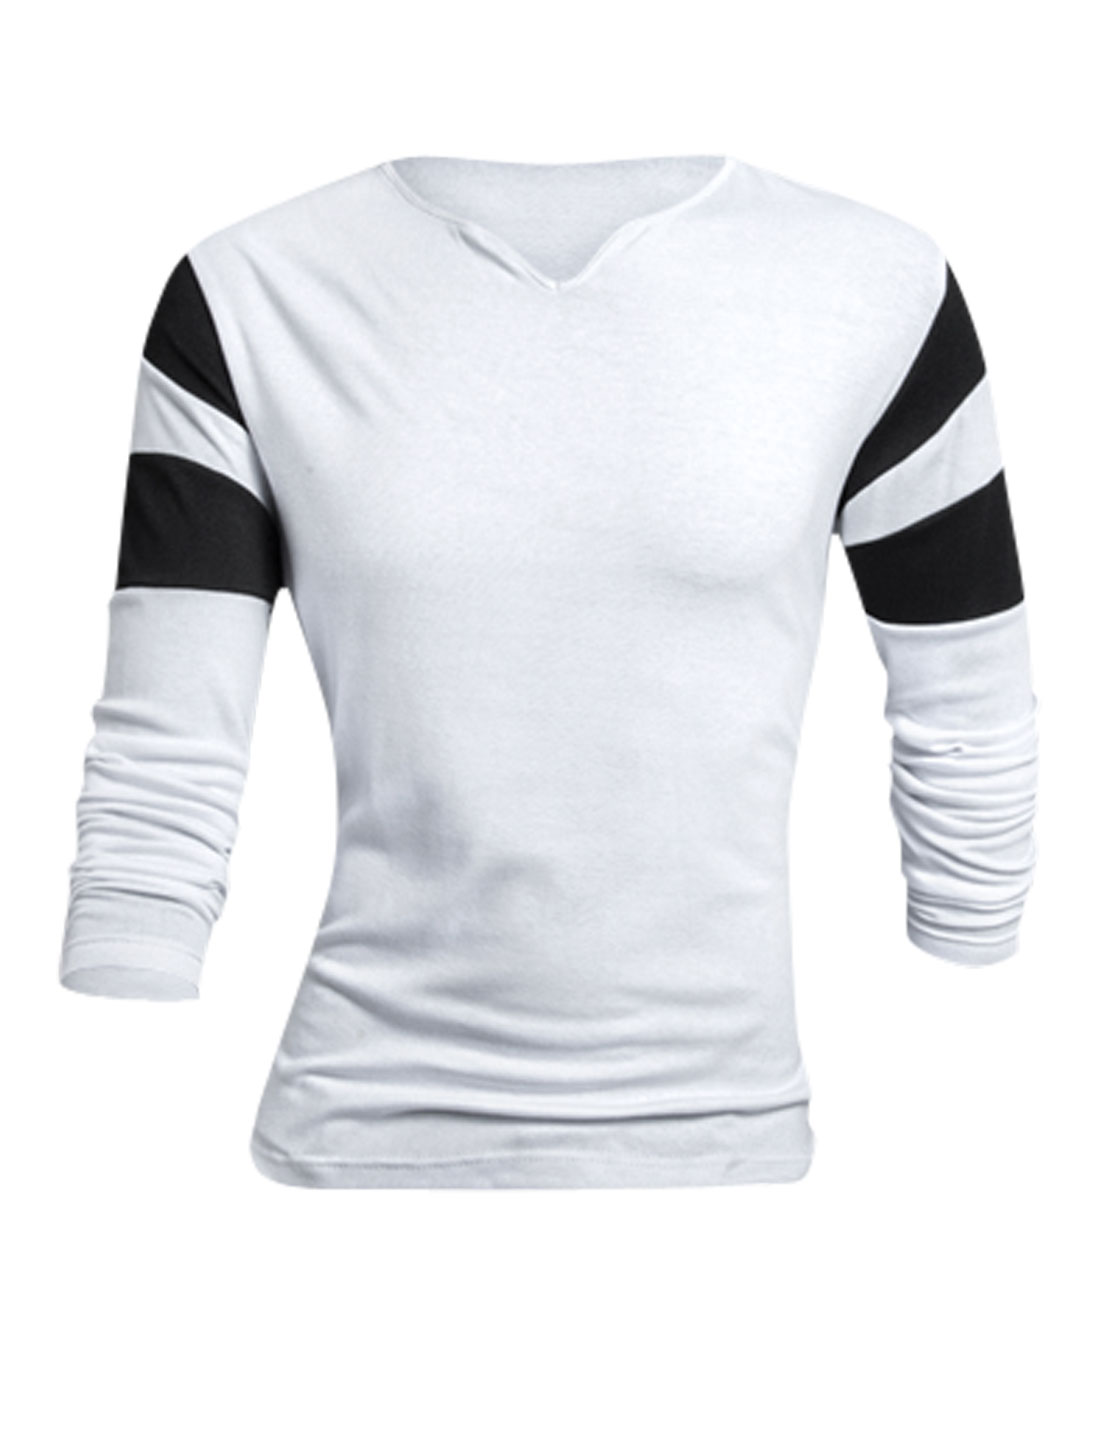 Man White Contrast Color Long Sleeves Slim Fit Casual T-Shirt L